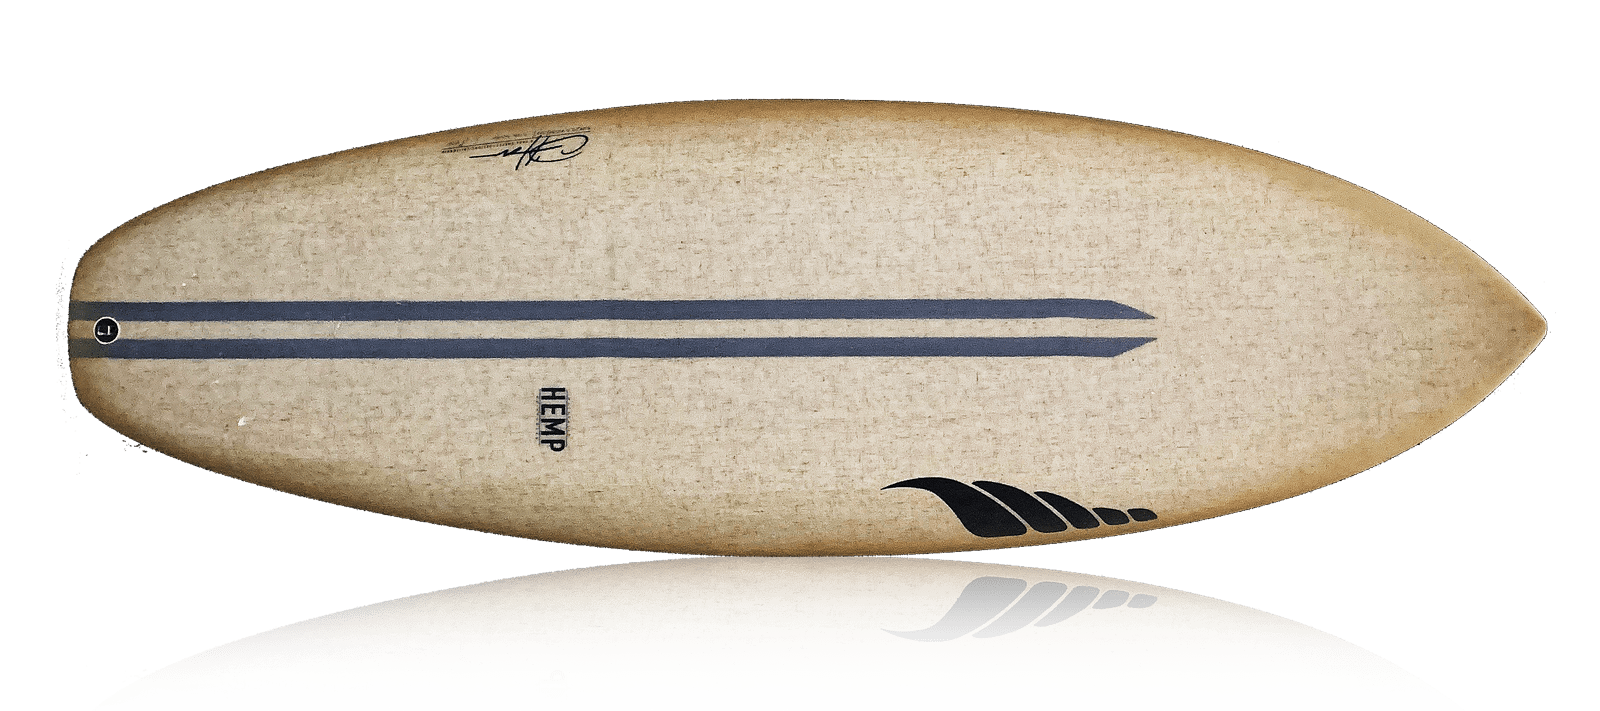 SOLID hemp surfboard Resized